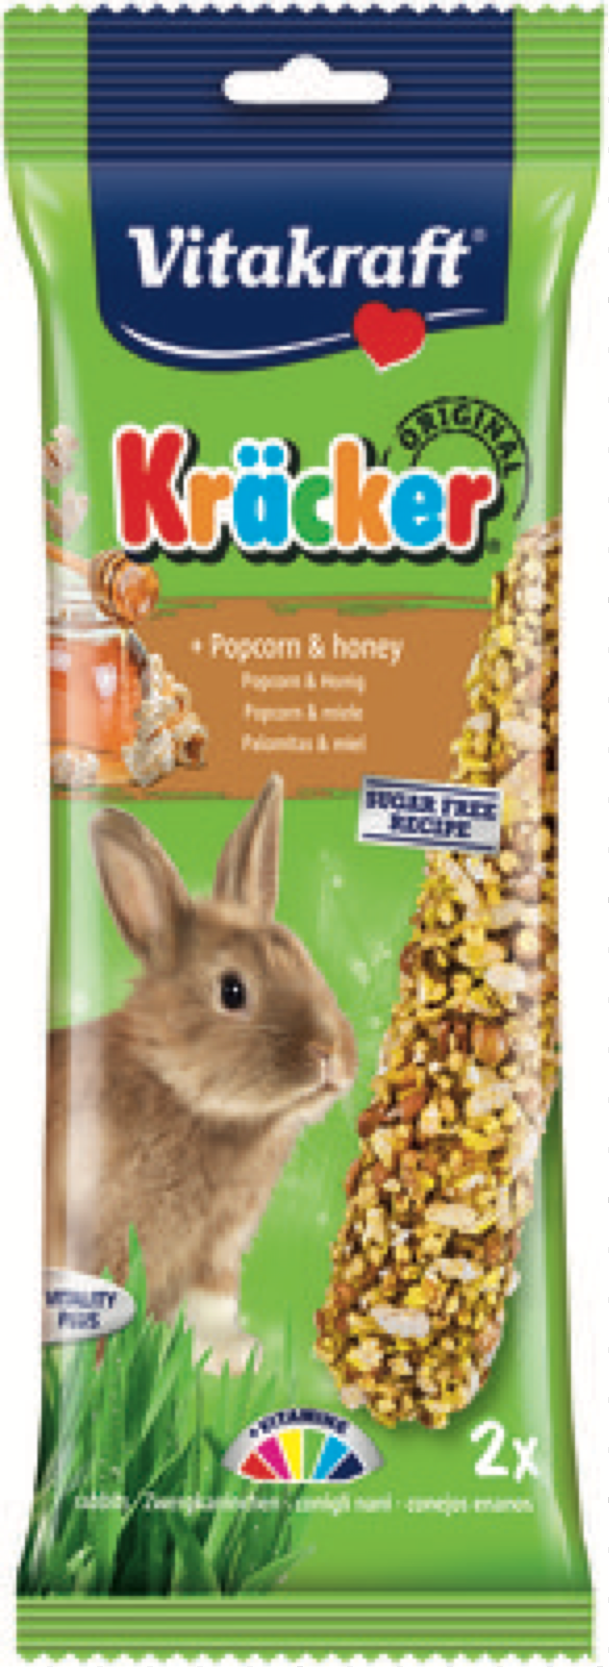 Vitakraft Rabbit Popcorn & Honey Kracker Treat Sticks